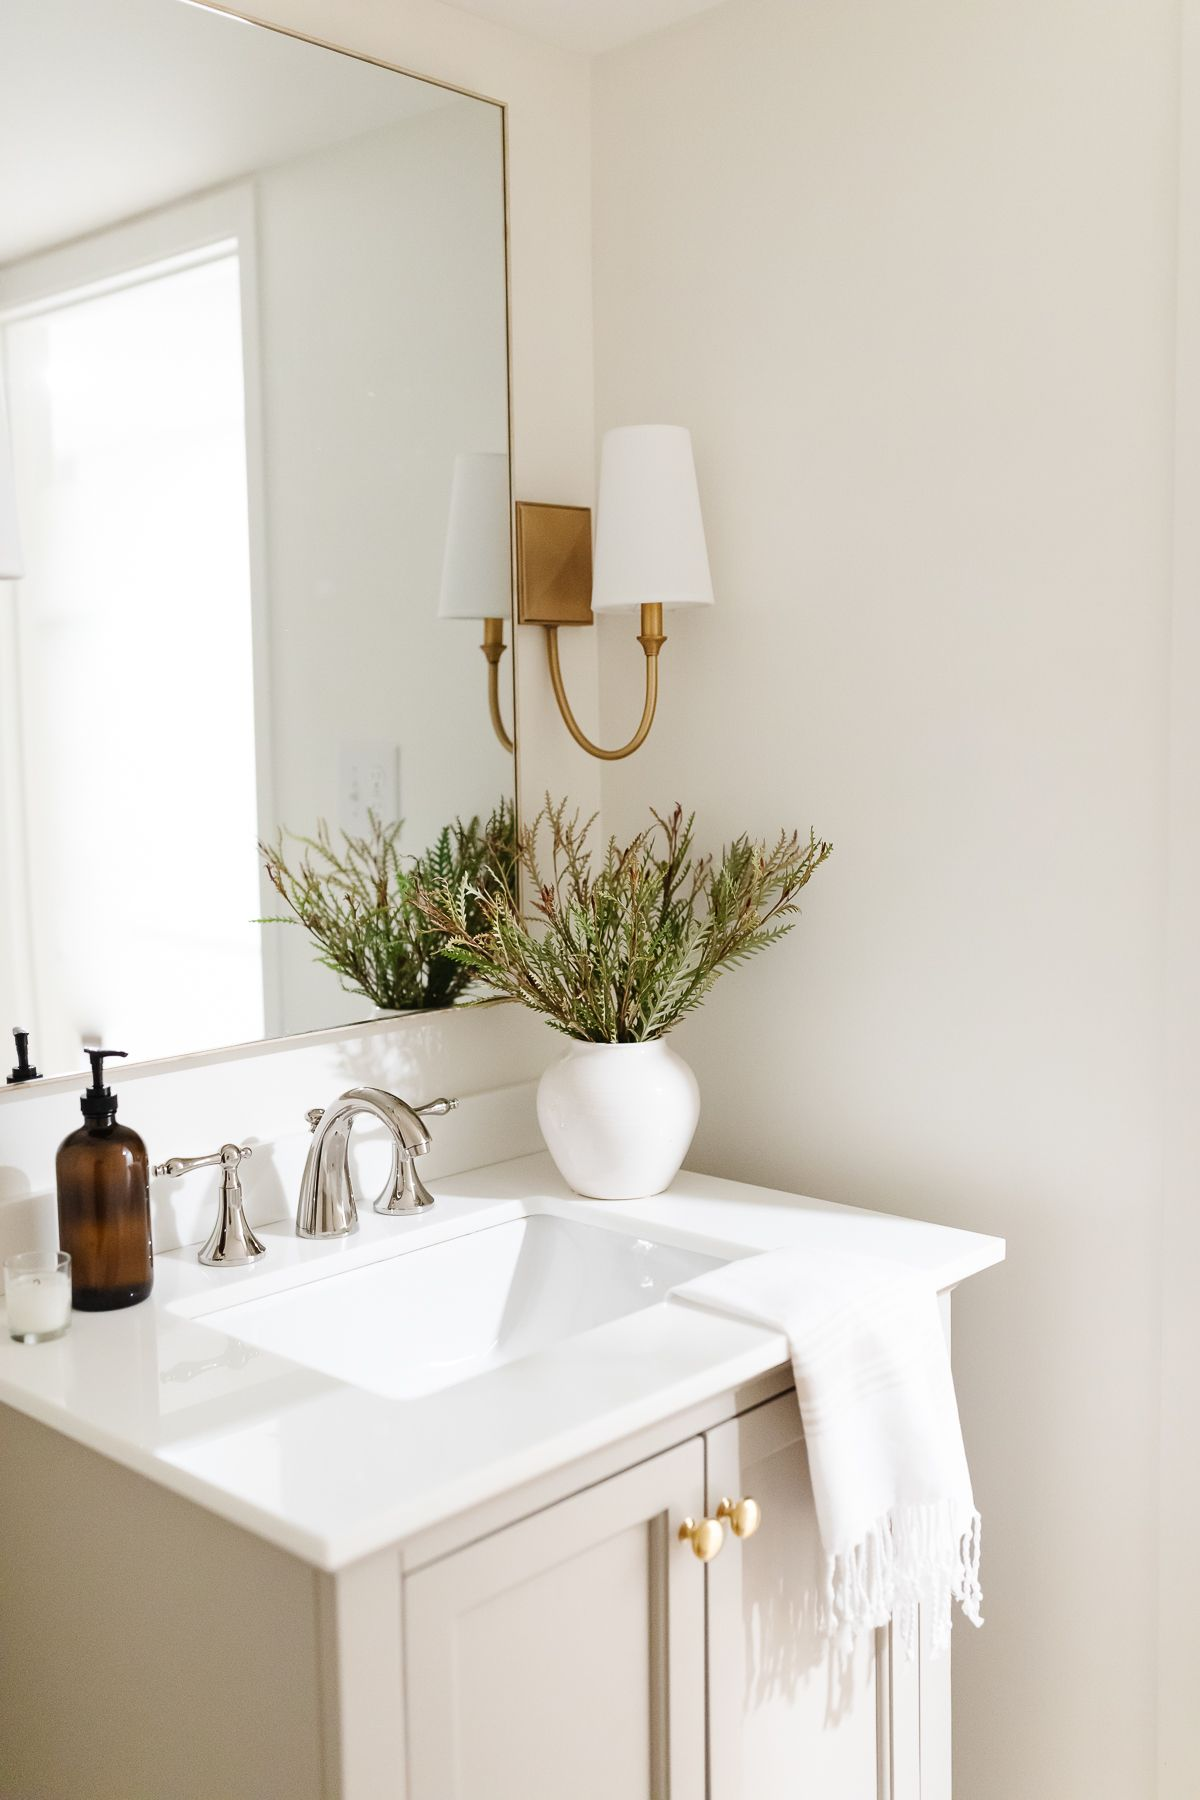 A small bathroom with gold sconces, greige vanity, and cloudy white painted walls